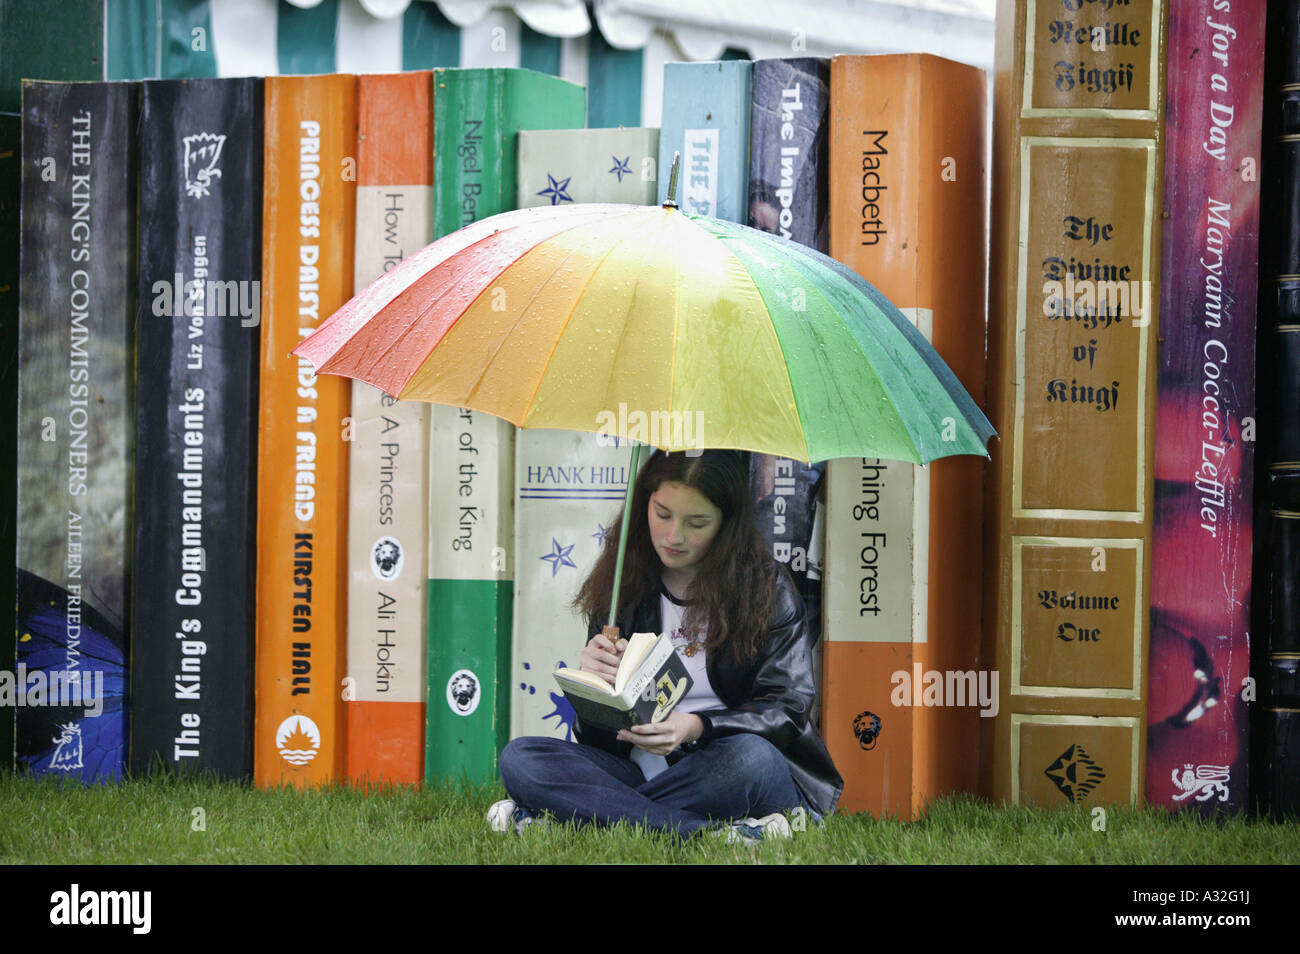 A visitor to the Hay on Wye book festival in Powys, Wales, reading in front of a display of oversize books in the - Stock Image